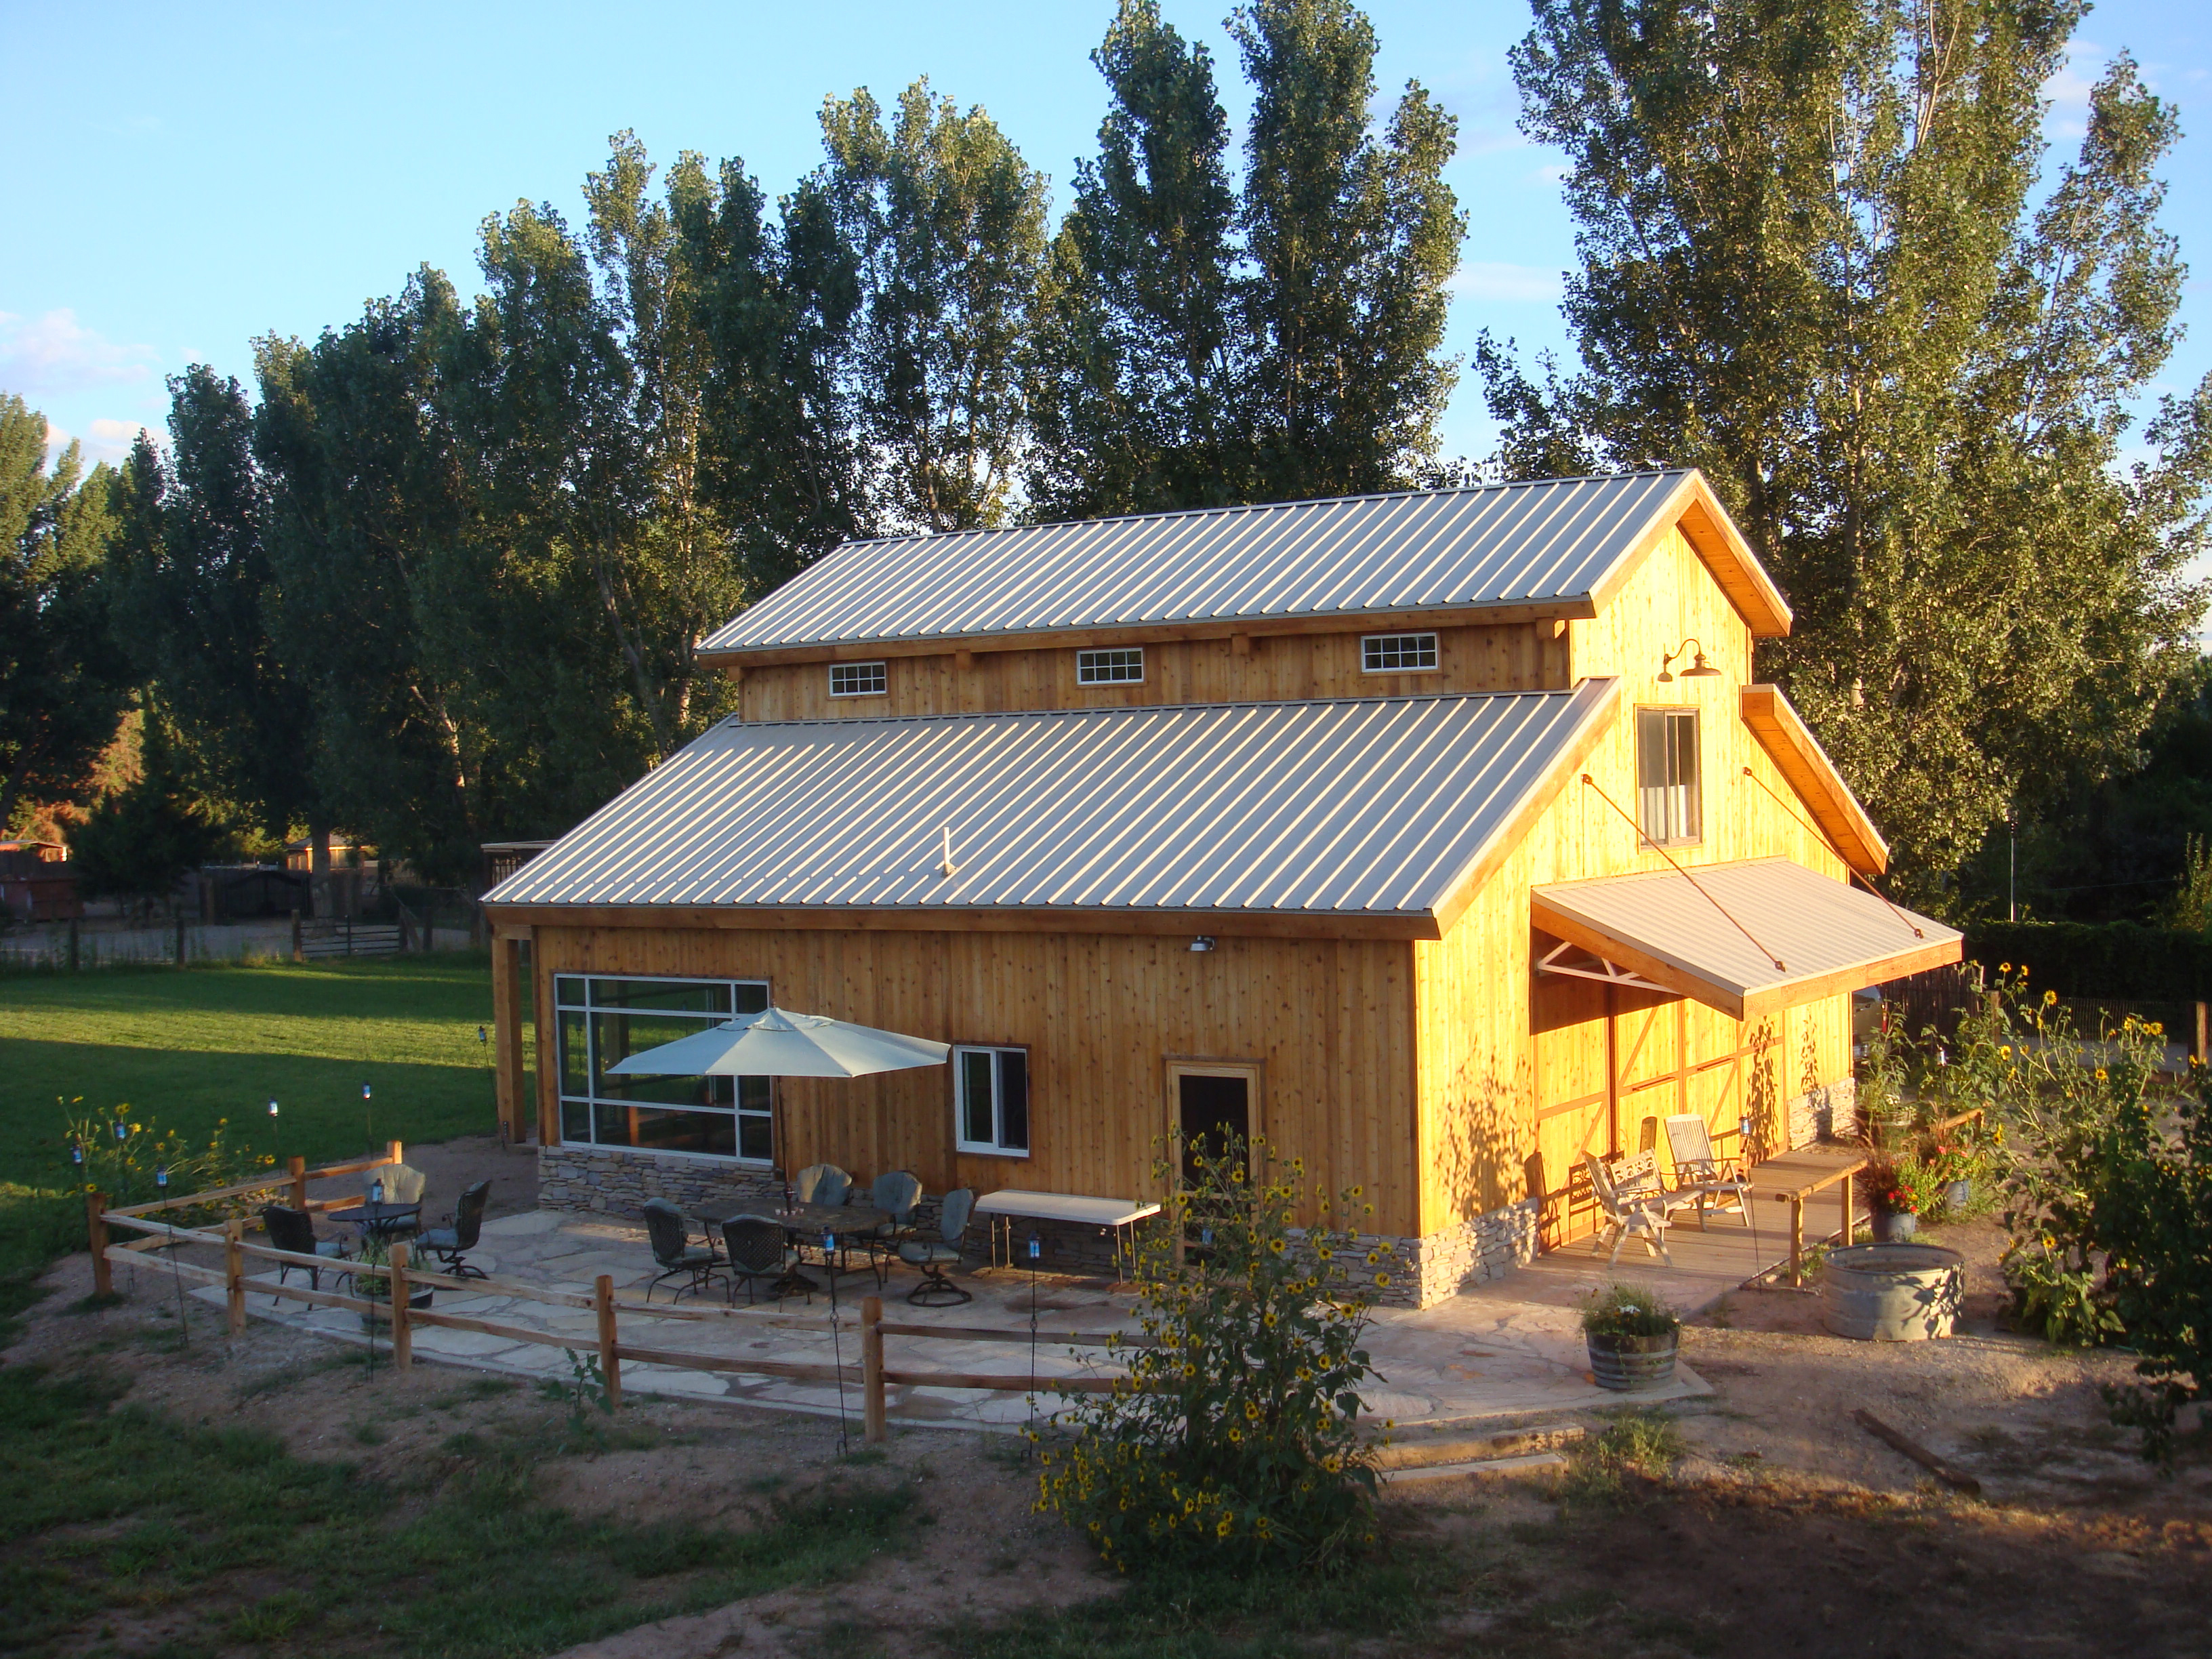 yellowstoneloghomes likewise B 515 r 11662 u 9848cf in addition Metal Roof furthermore Doublewidetiv together with Texas Country Barn Home. on pole construction homes